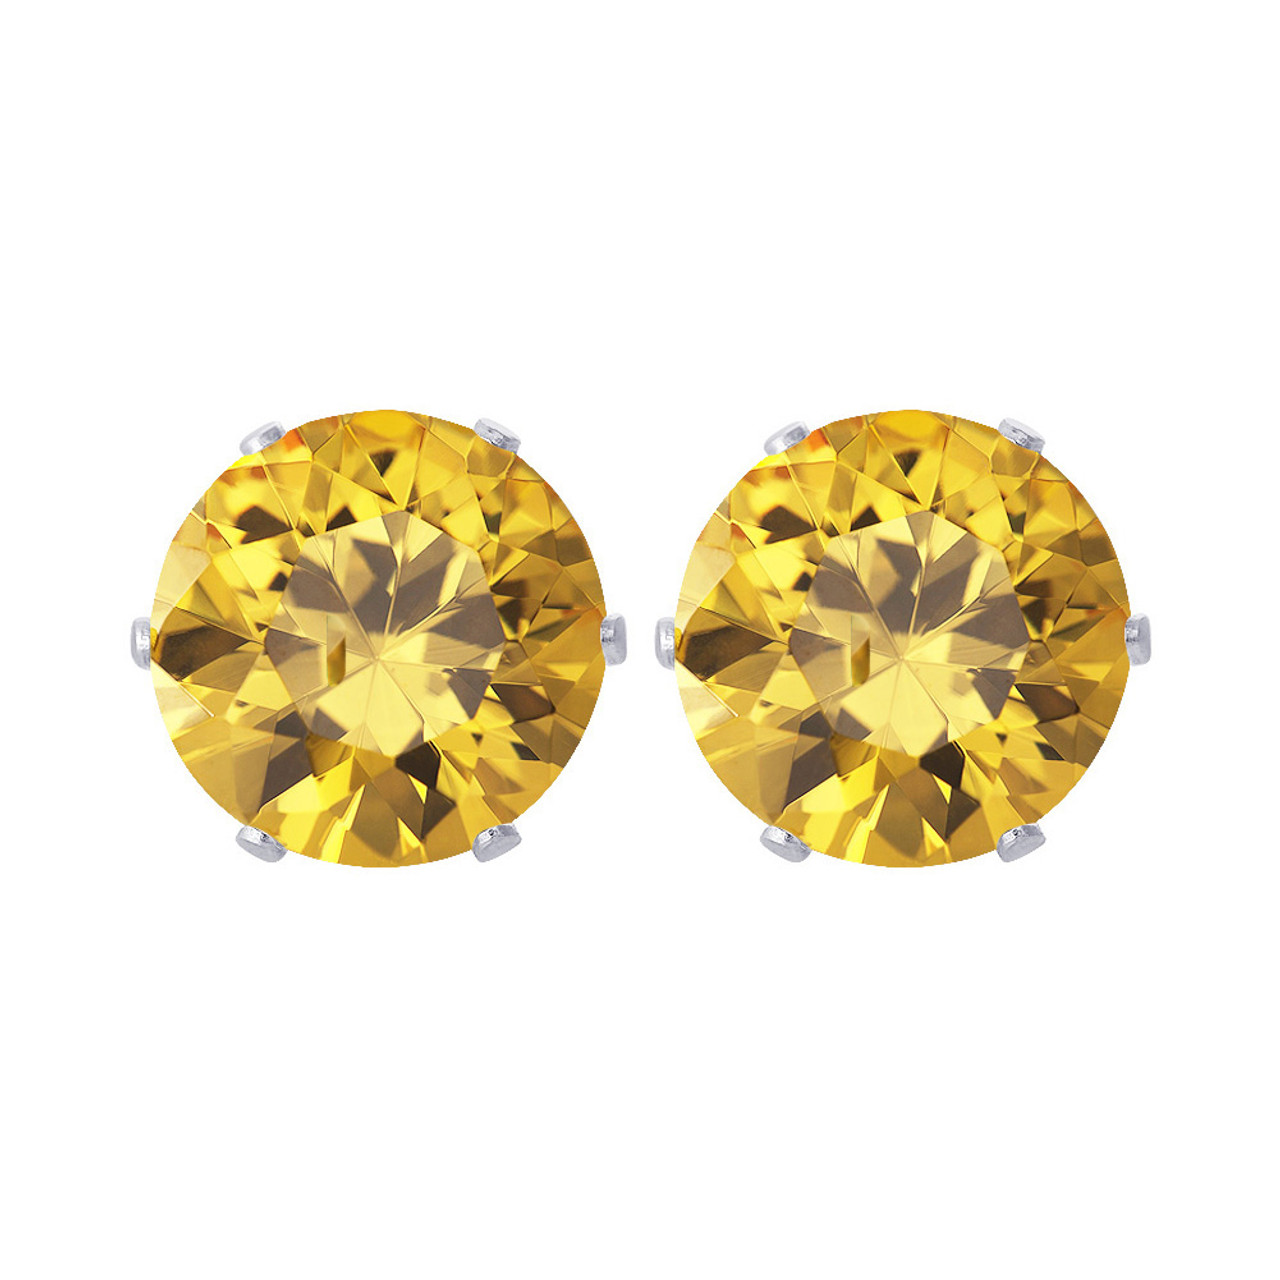 8mm Round Yellow Cubic Zirconia CZ Stud Earrings